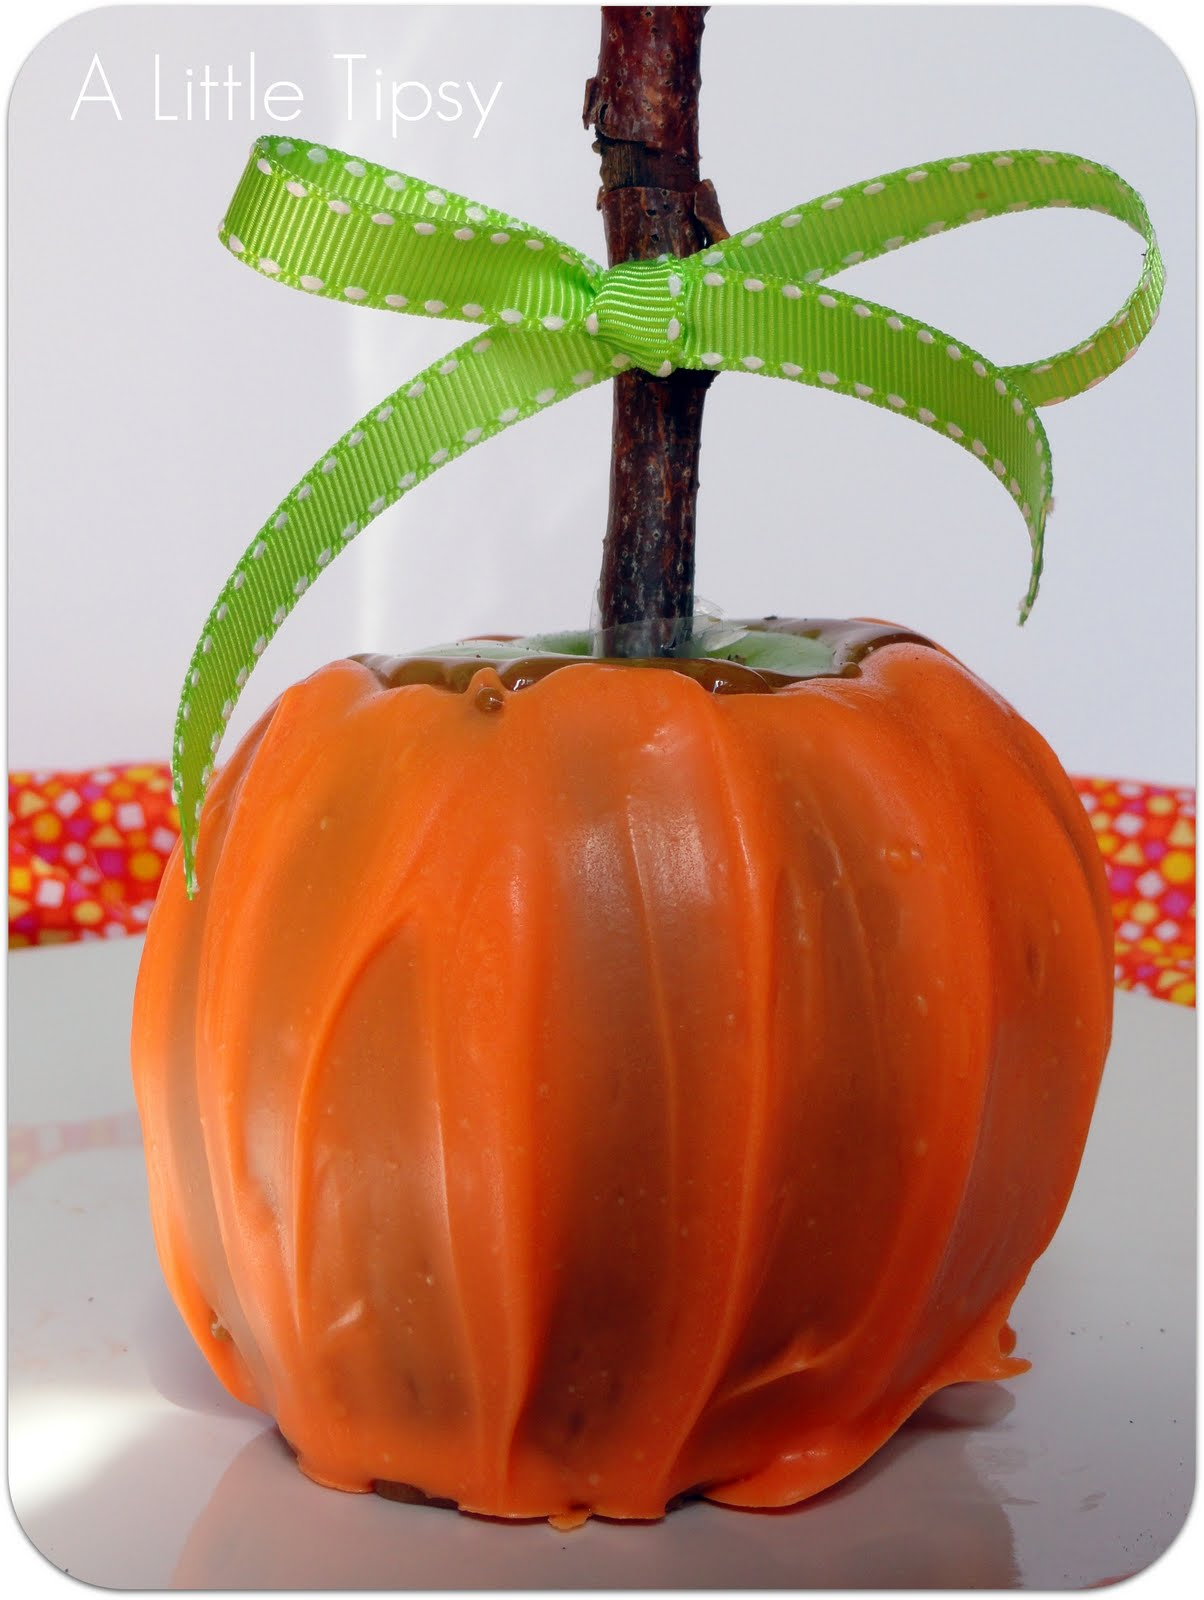 Caramel apple recipe for point of view autumn theme a for Caramel apple recipes for halloween